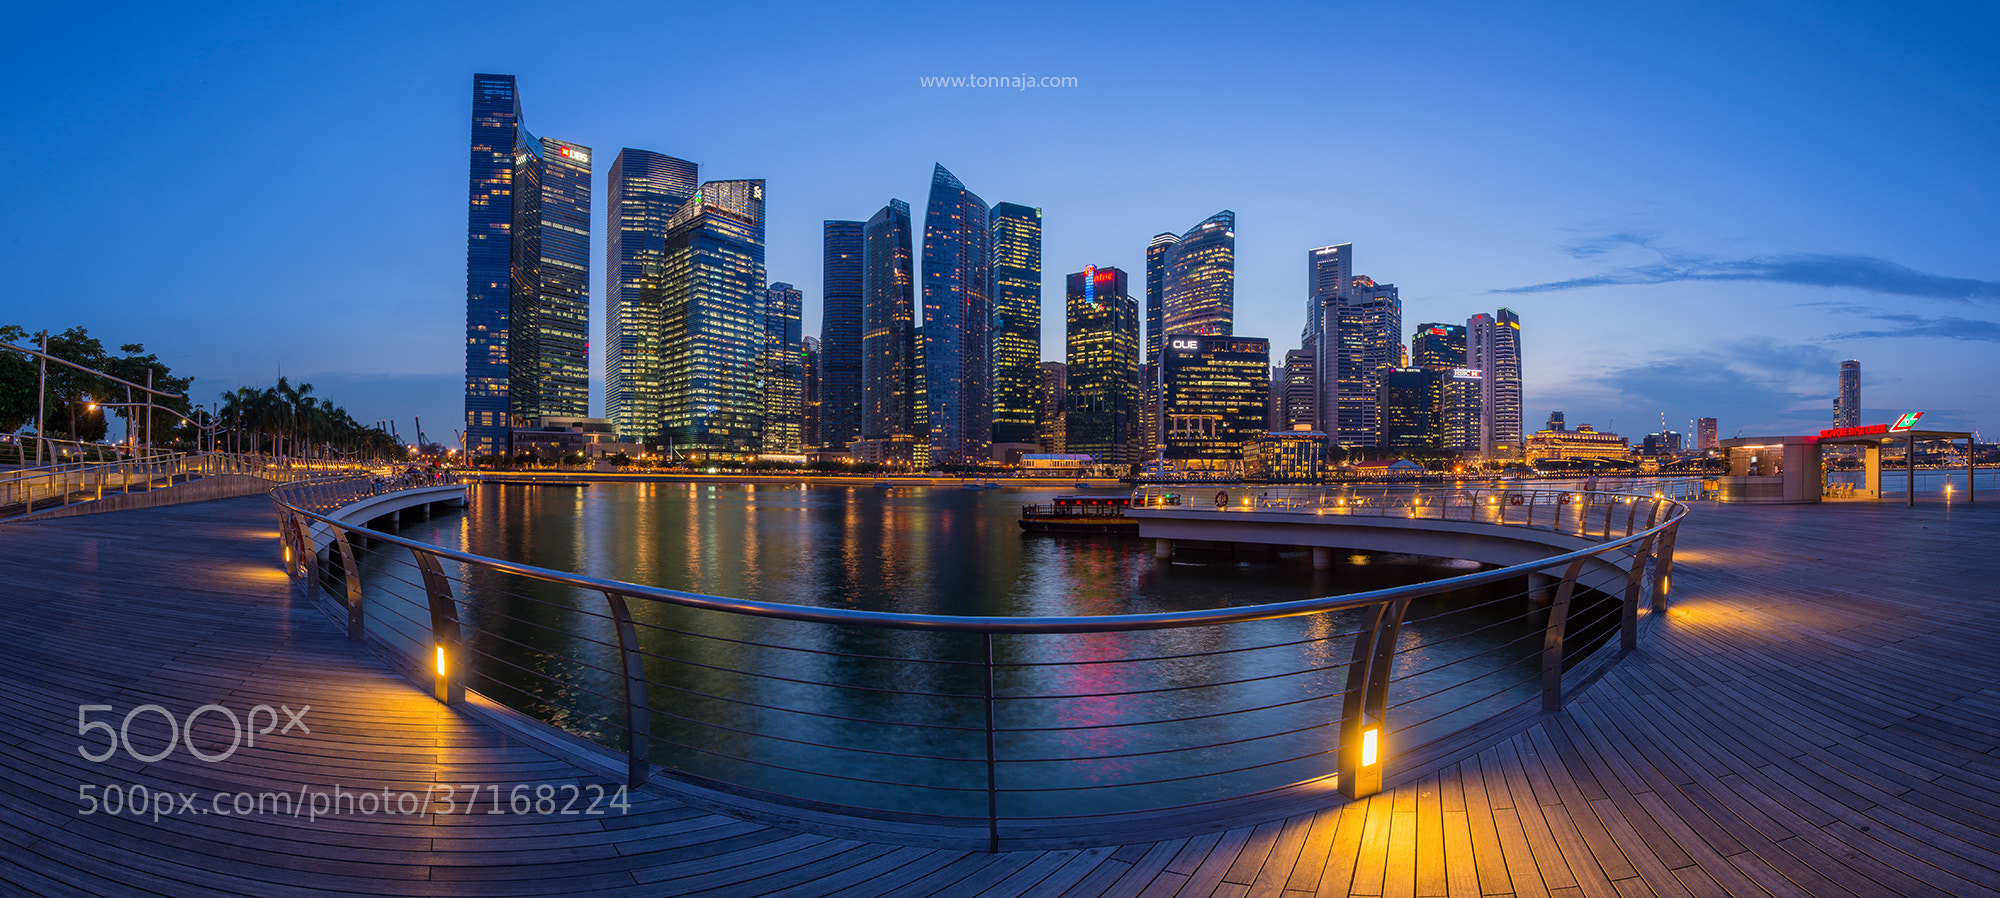 Photograph Business Building in Singapore by Tonnaja Anan Charoenkal on 500px